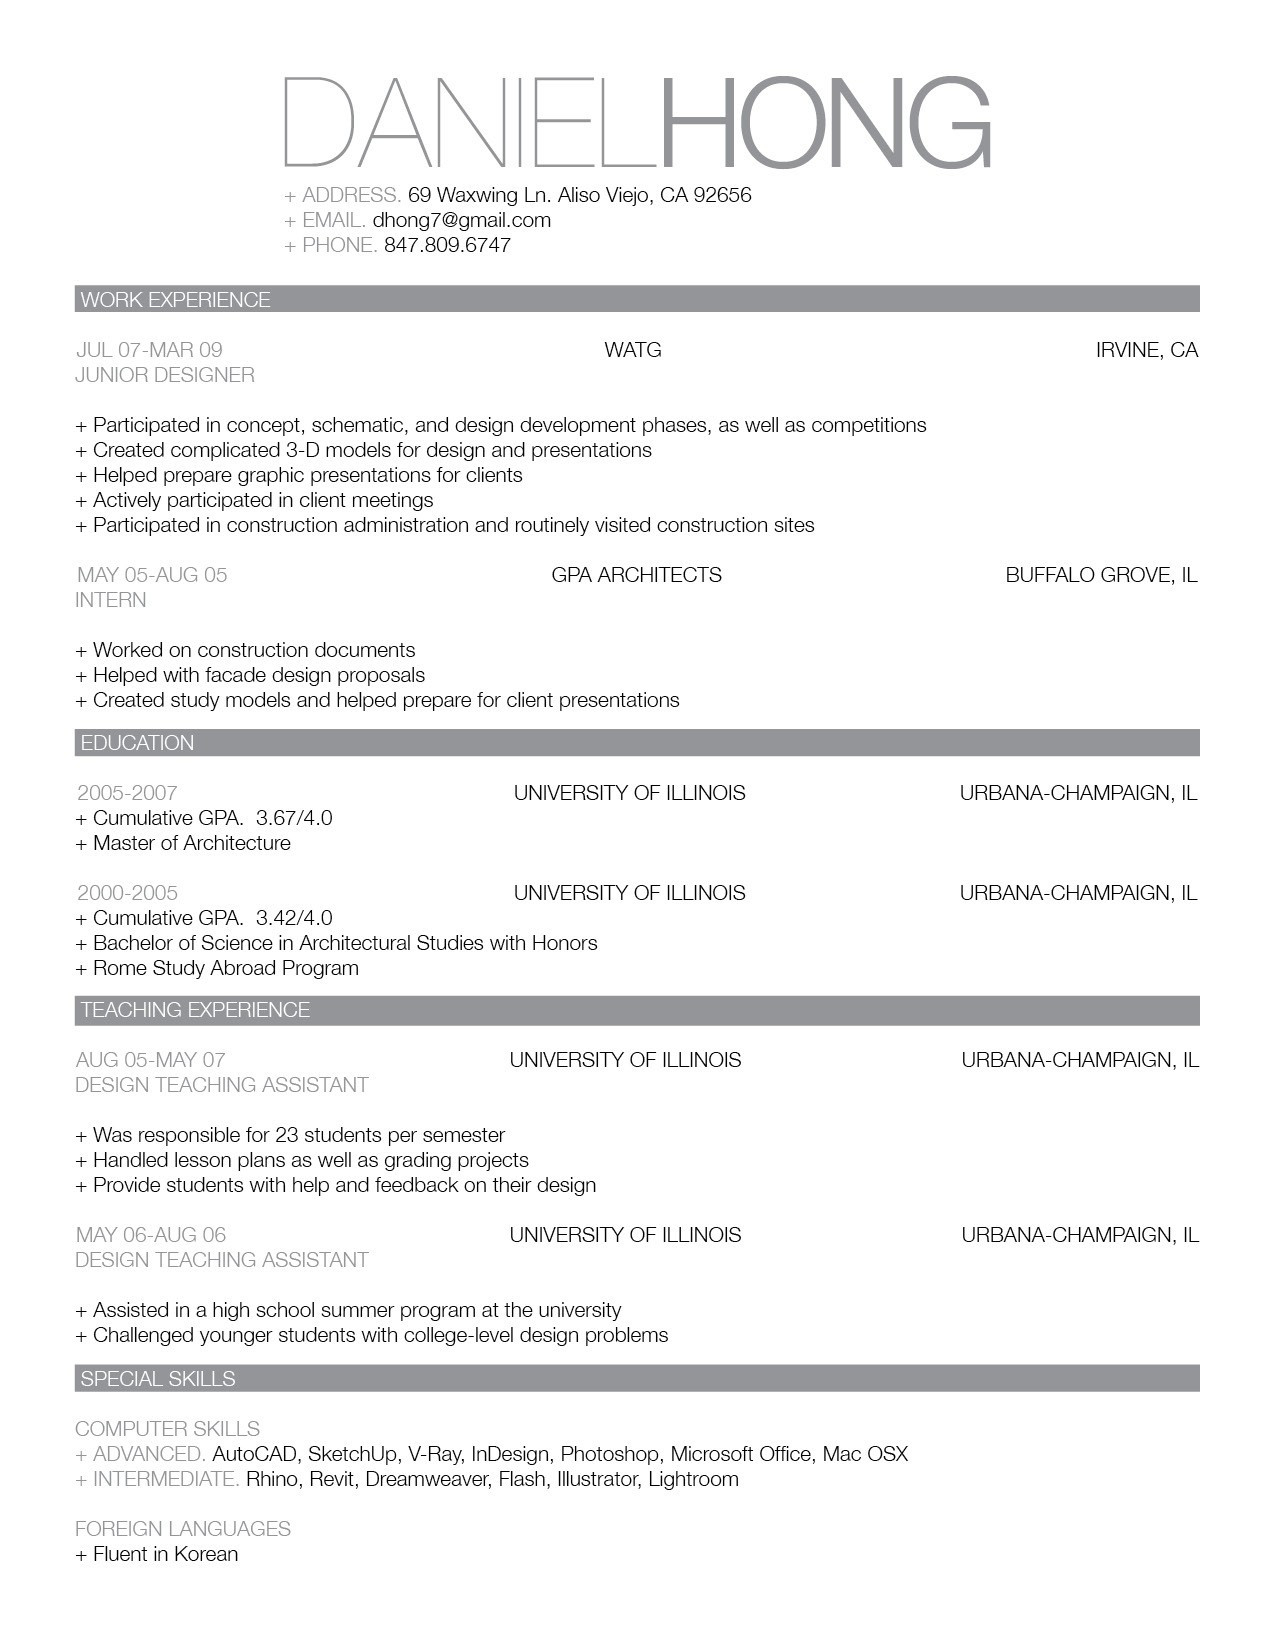 Executive Resume Samples 2016 - Executive Resume Samples 2016 Rare Ses Resume Examples How to Update